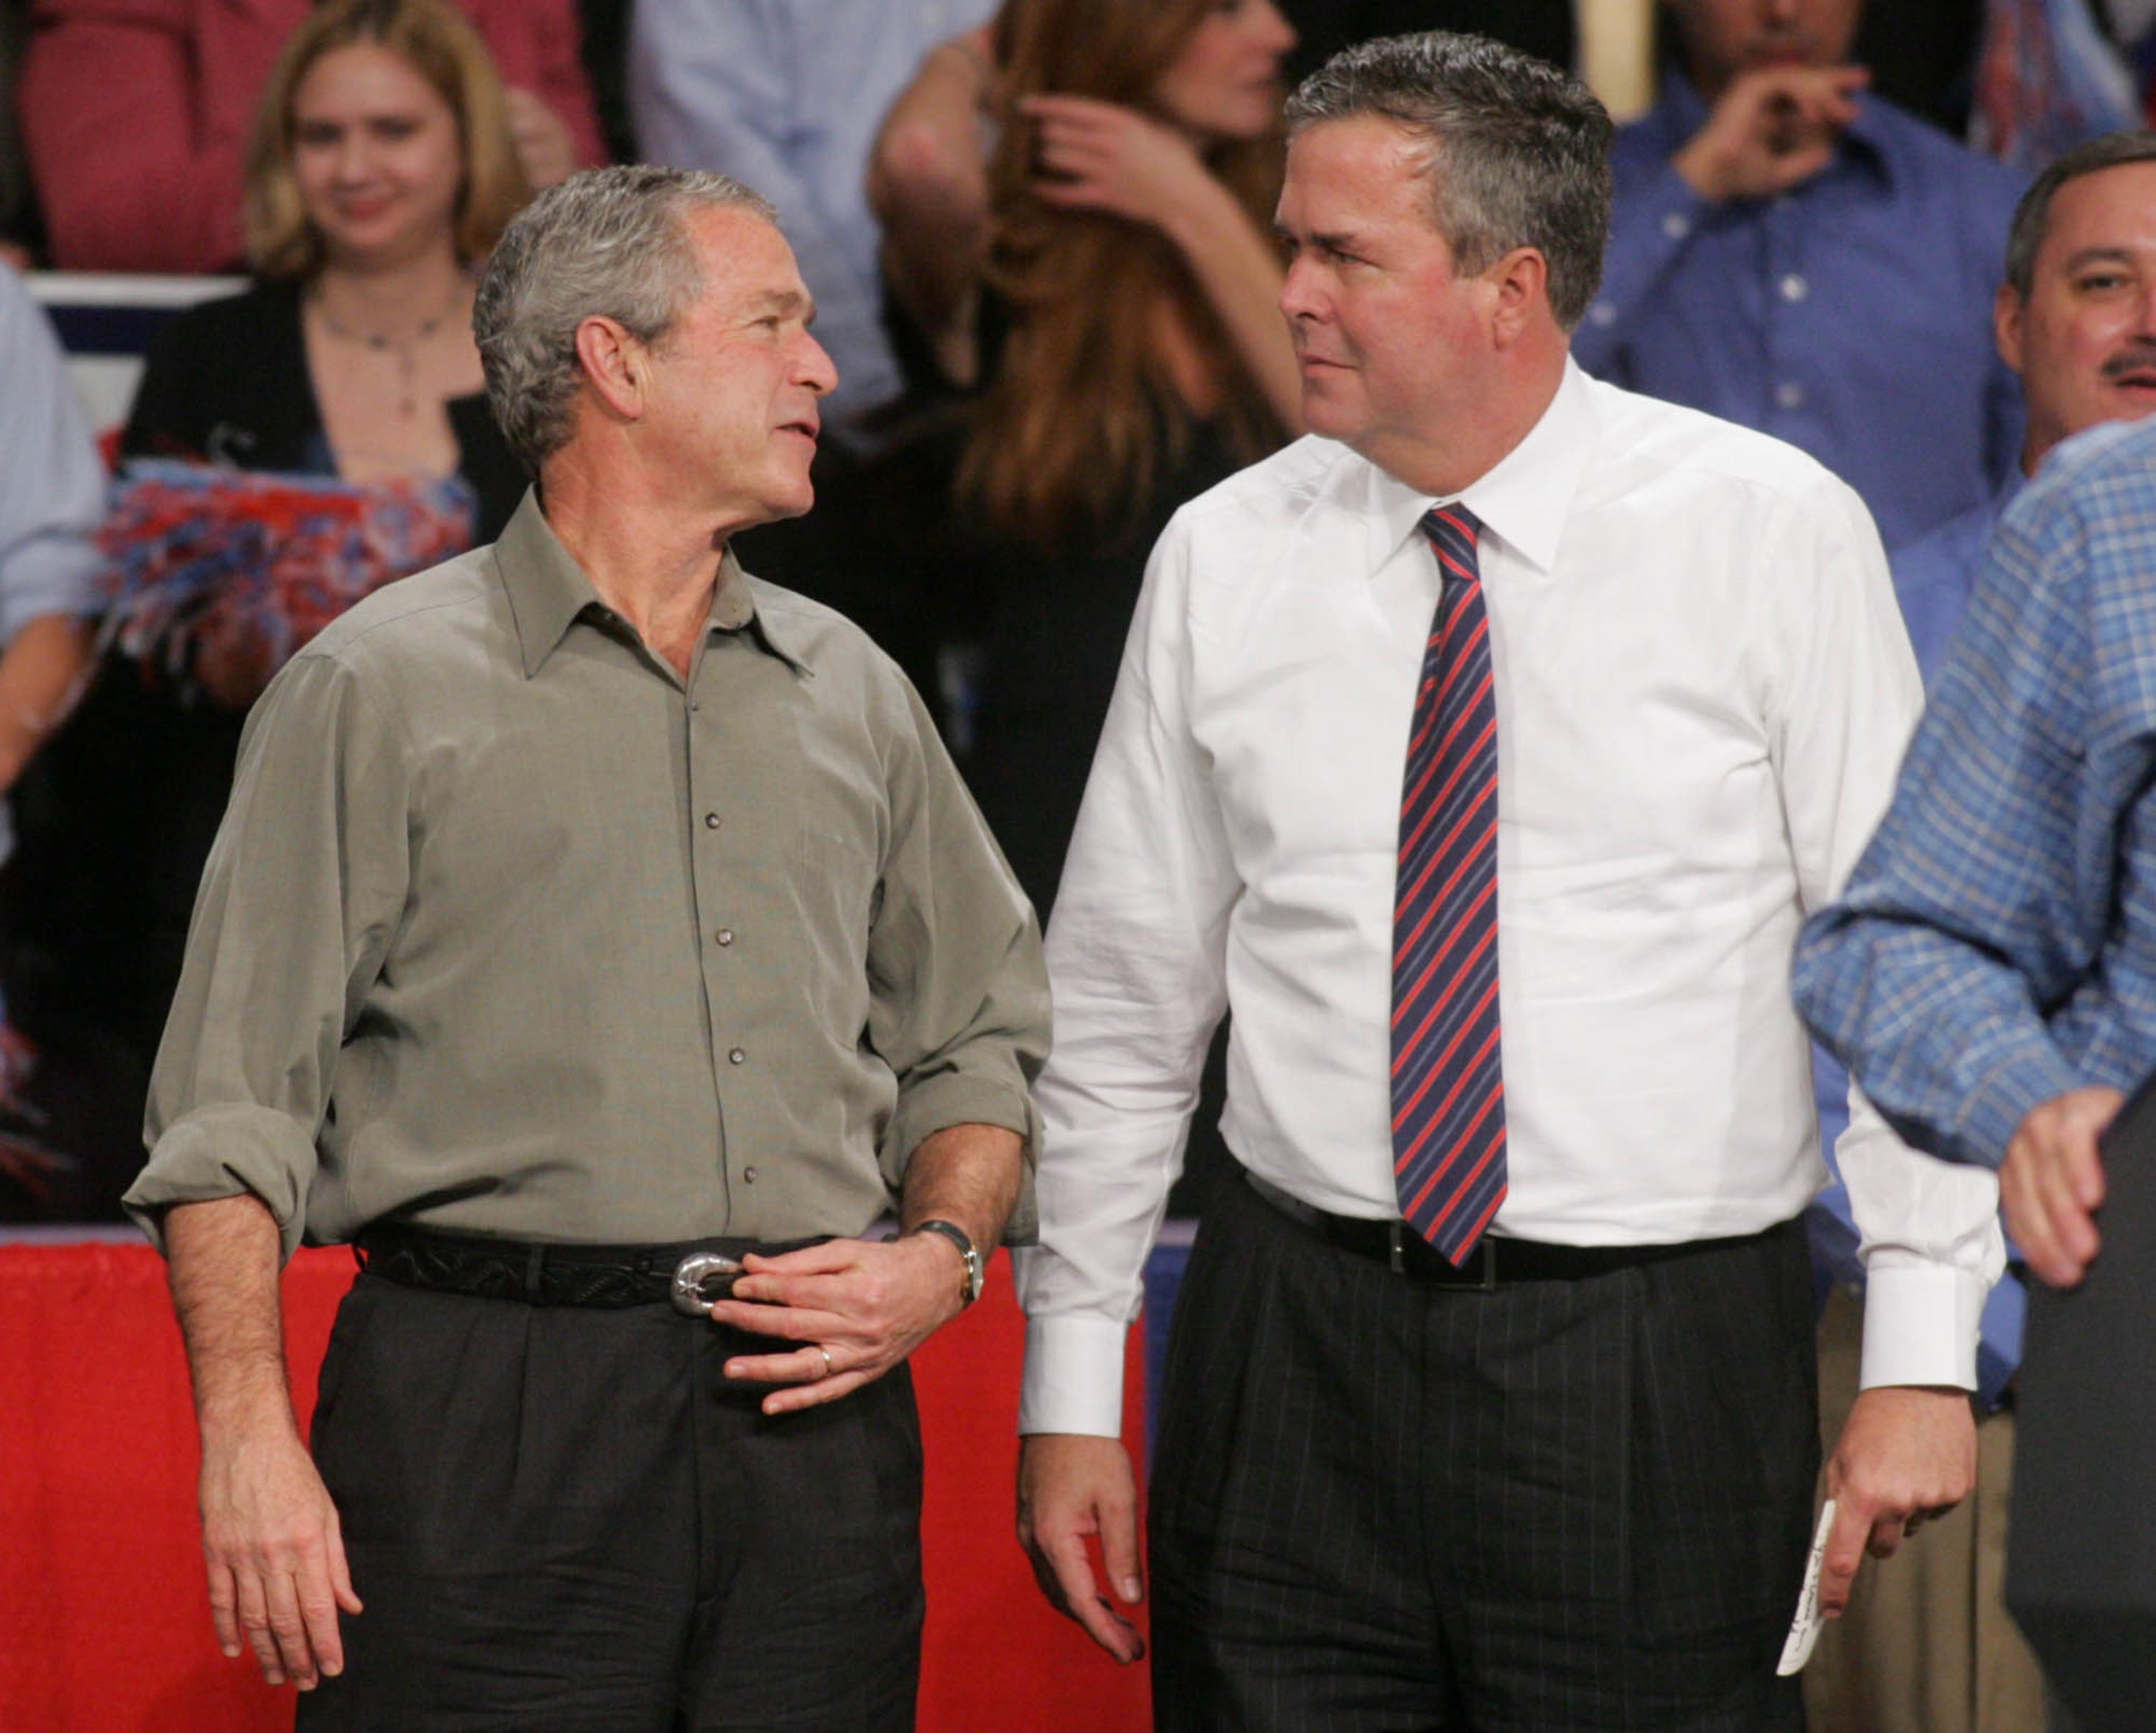 George W. Bush: From South Carolina cameo to starring role